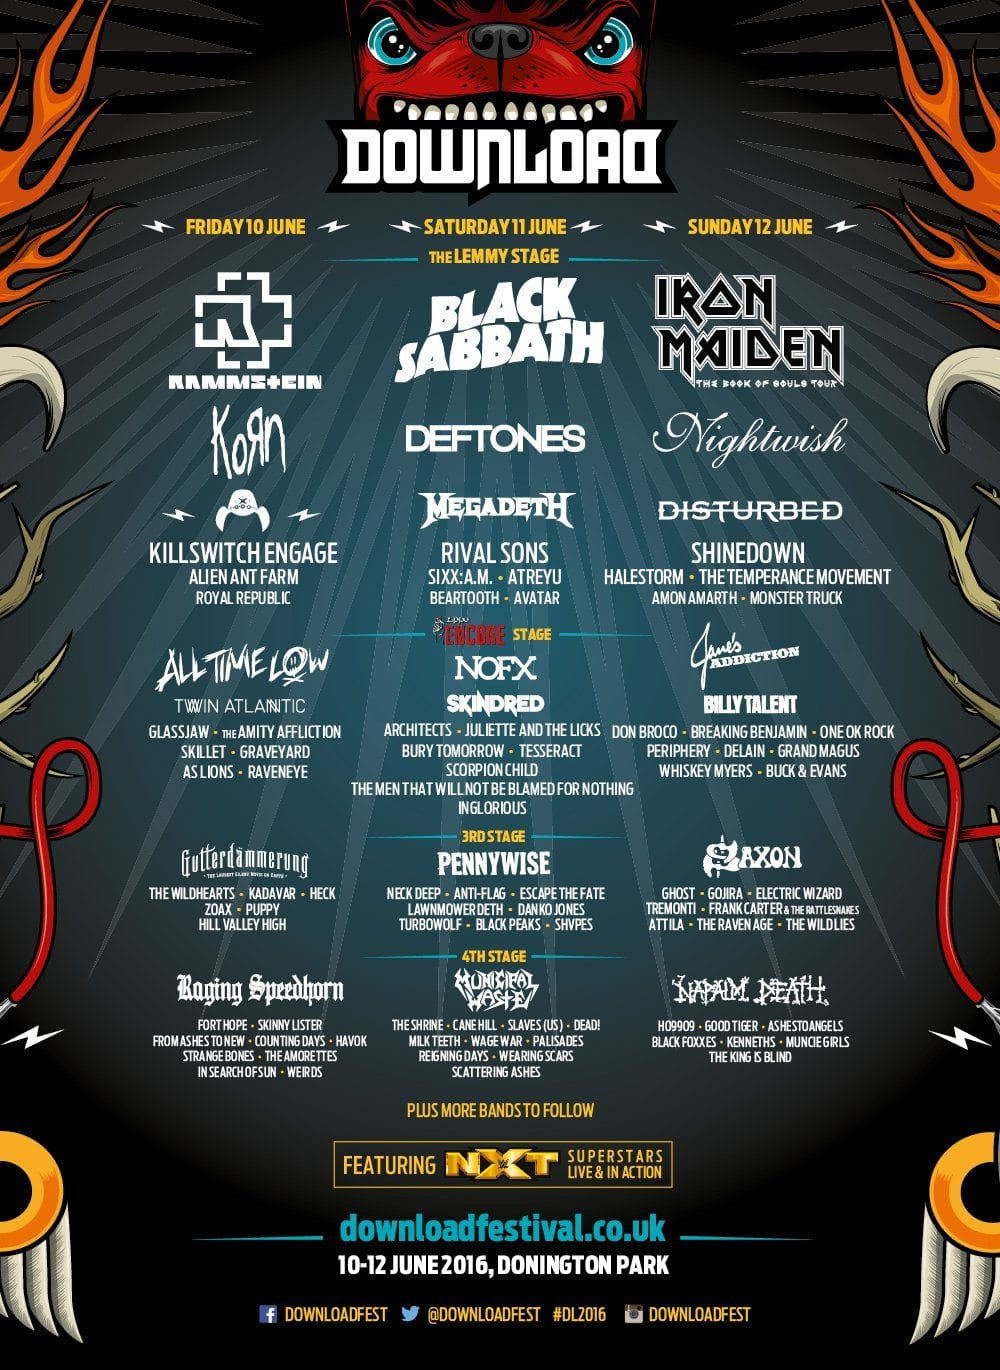 Download Festival 2016 Festival Poster